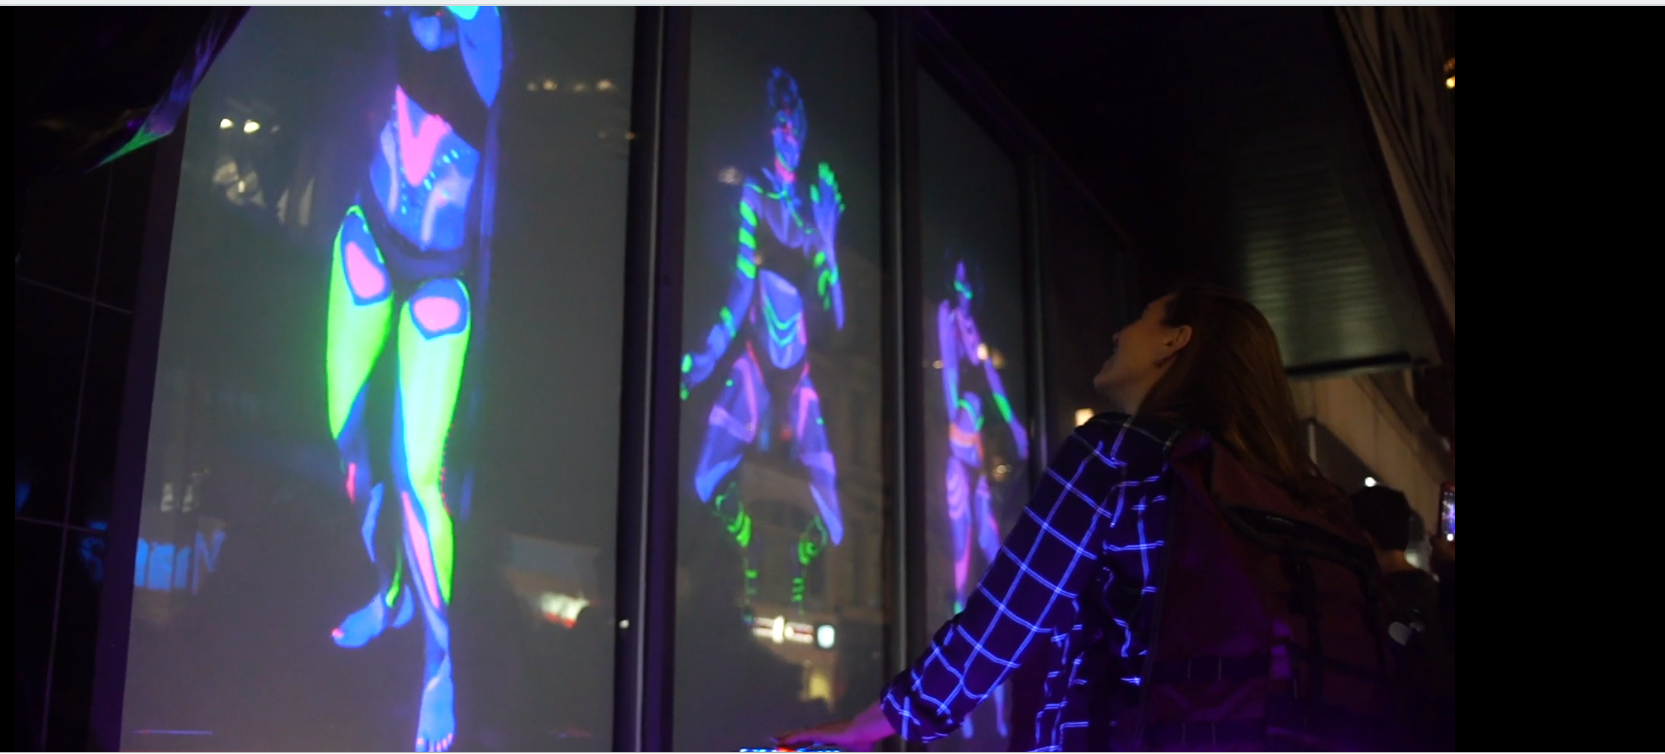 IDC New Media Artist Stephanie Houten's PLAY @ Illuminus Boston